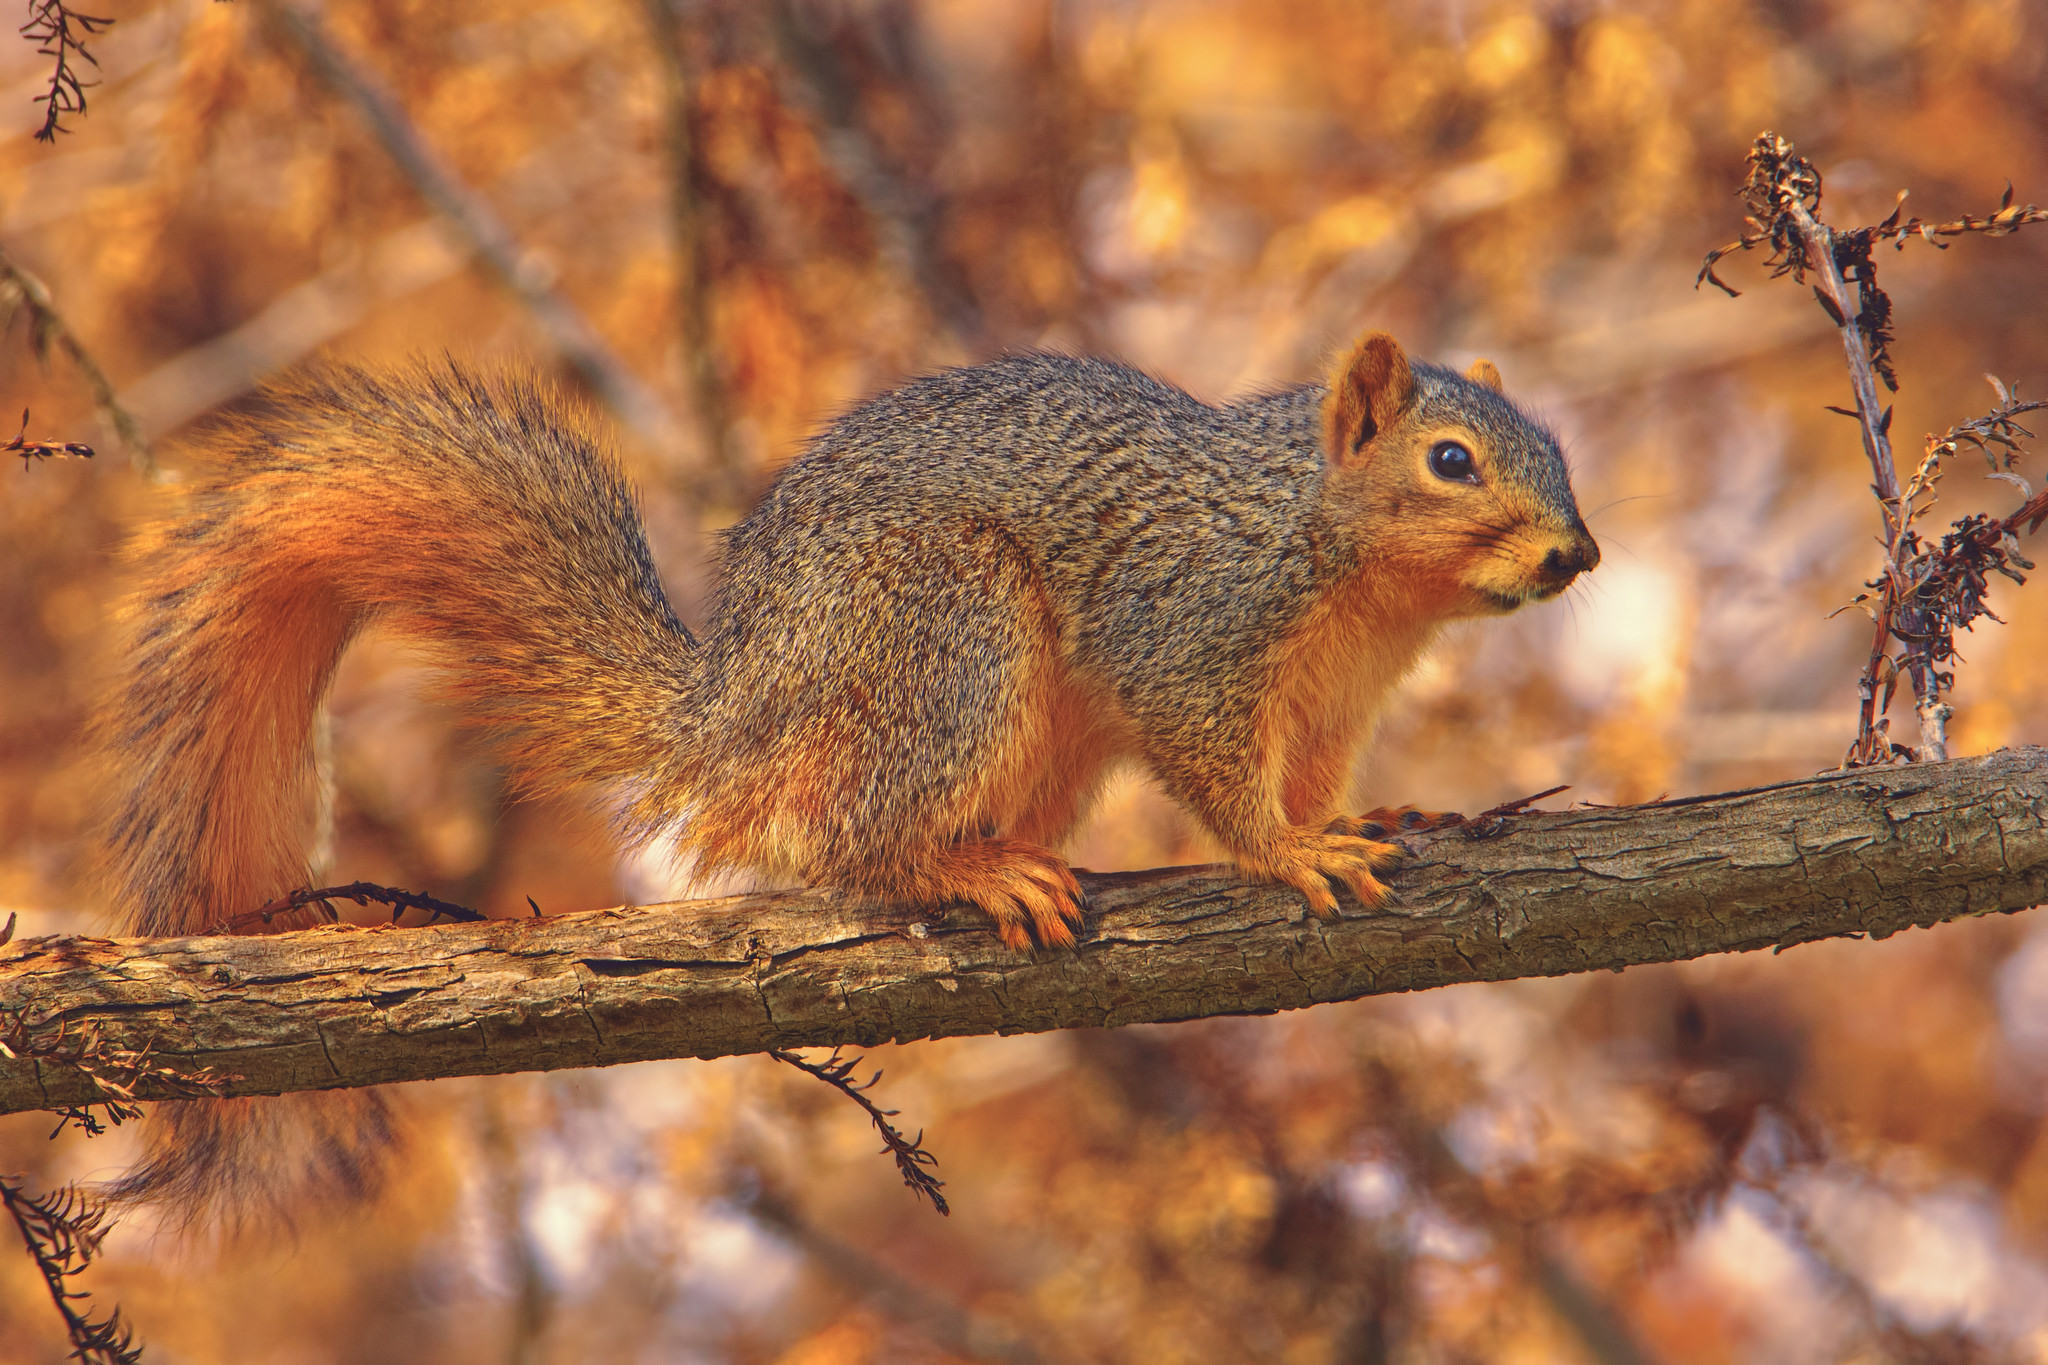 Eastern fox squirrel videos, photos and facts - Sciurus Pictures of a fox squirrel